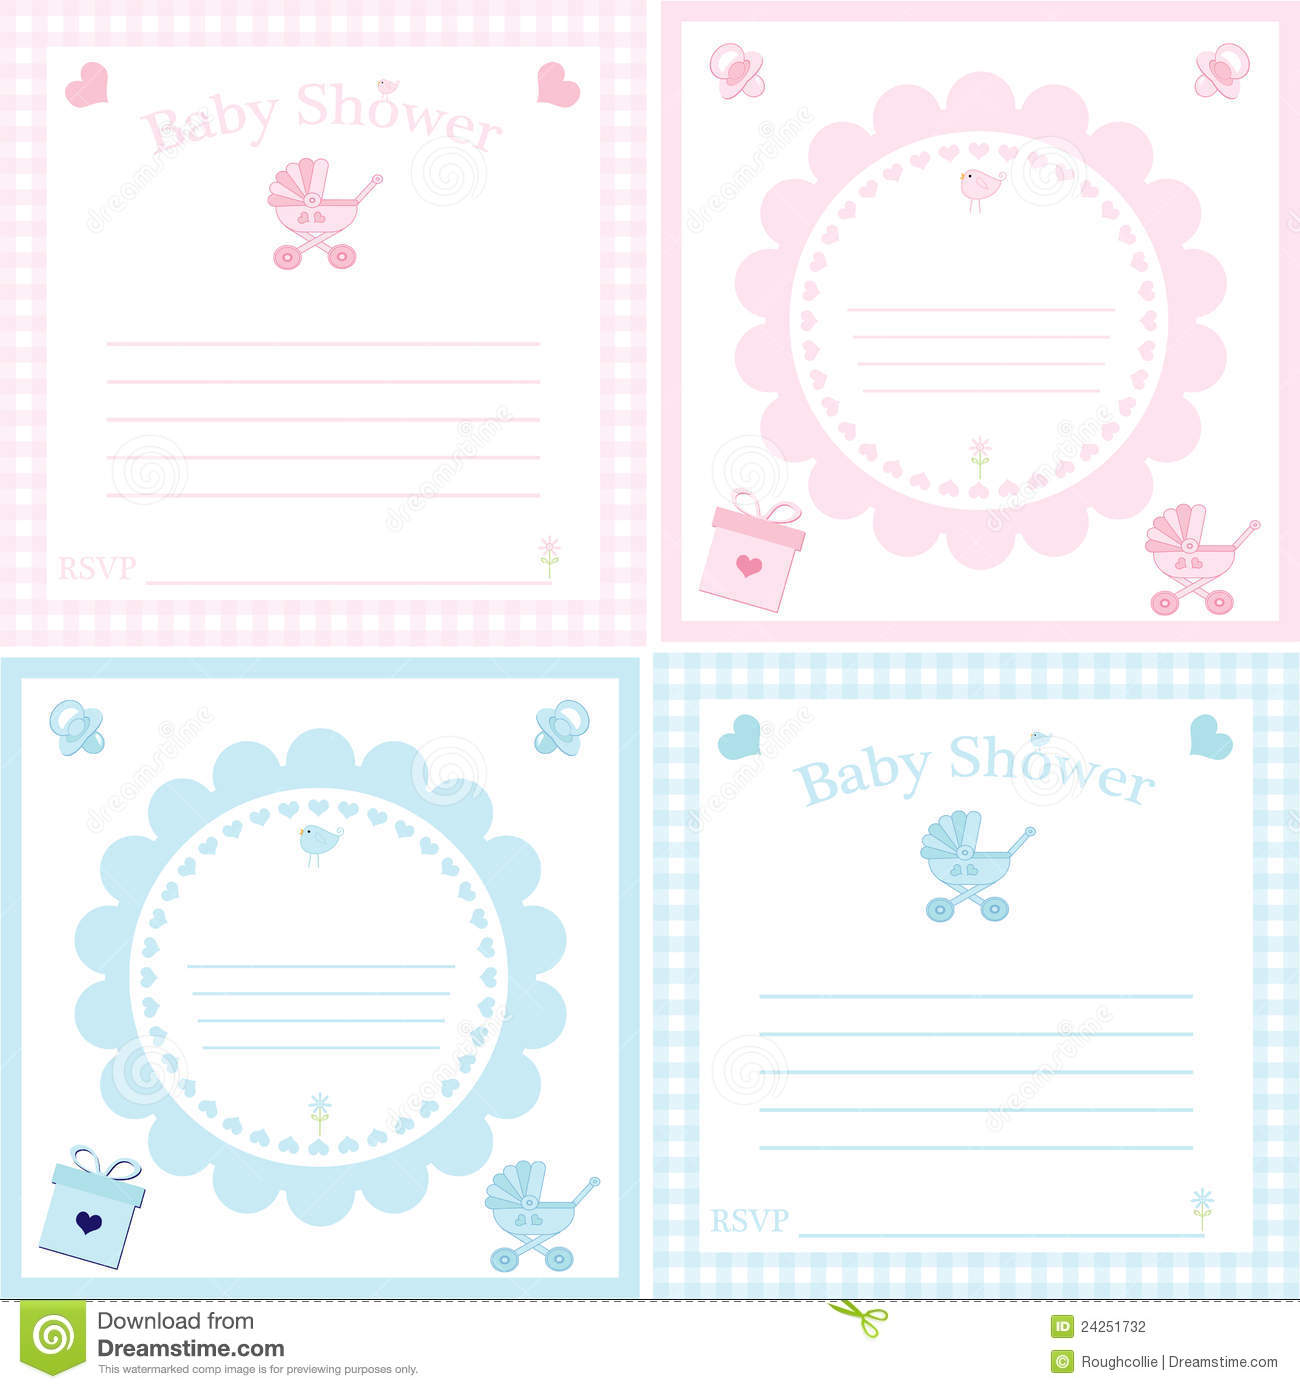 Christening Invitation Cards Templates for amazing invitations ideas